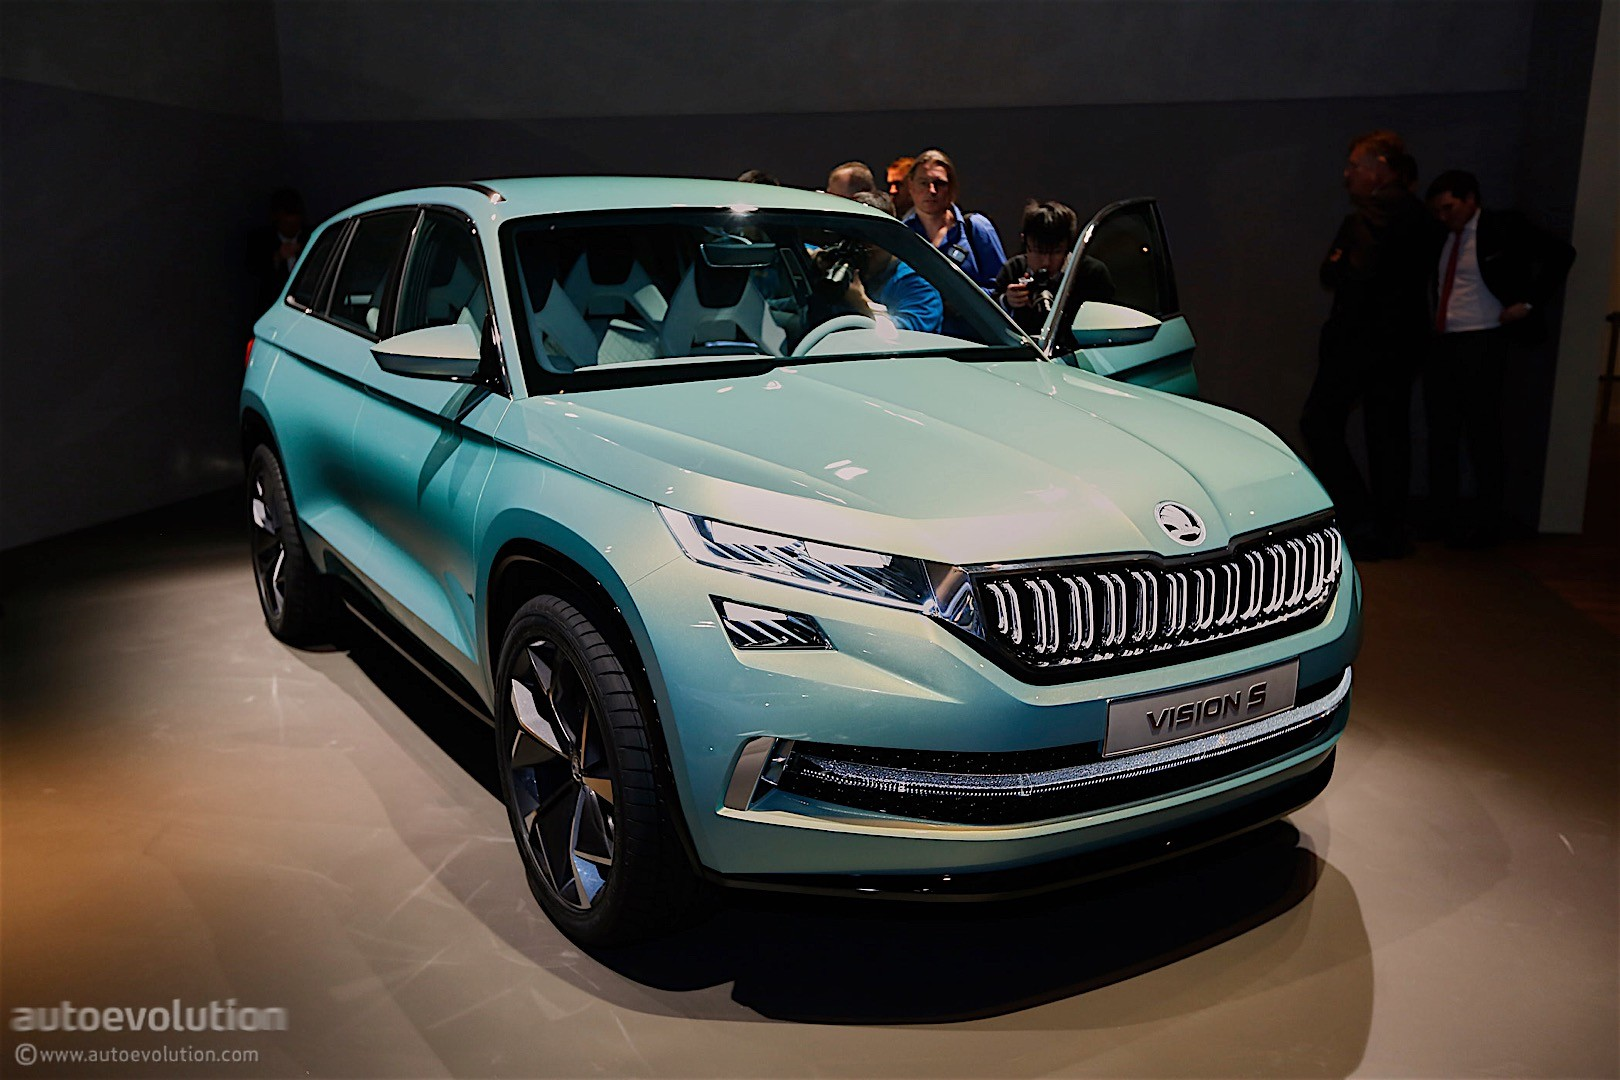 7 Seater Suv 2017 >> Skoda VisionS Concept Shows Us the First Big SUV from the Czech Brand - autoevolution